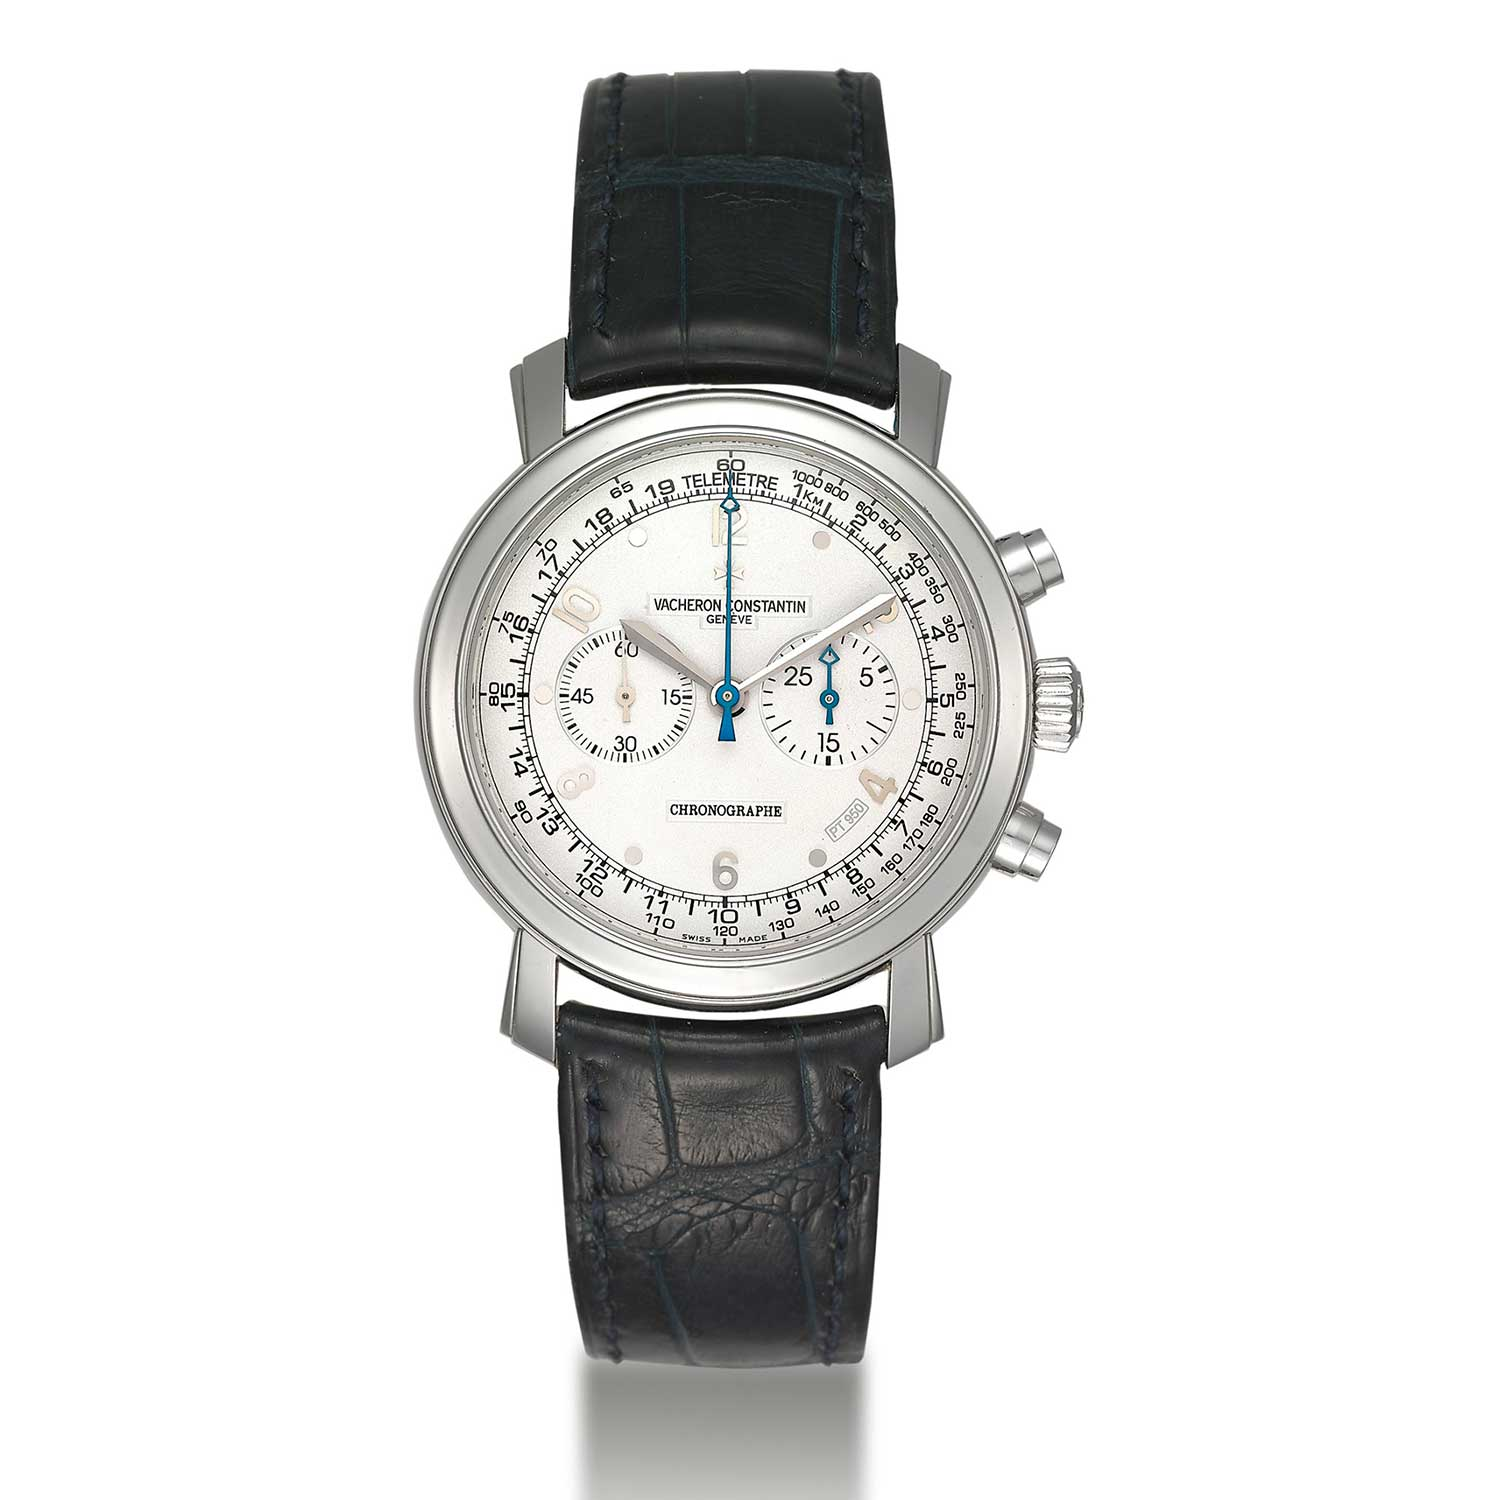 """Vacheron Constantin introduced in 2006 a strictly limited edition of 75 timepieces of the """"Malte Chronograph"""" cased in platinum, part of the of the """"Collection Excellence Platine"""", the watches are fitted with a platinum dial (Image: Christies.com)"""